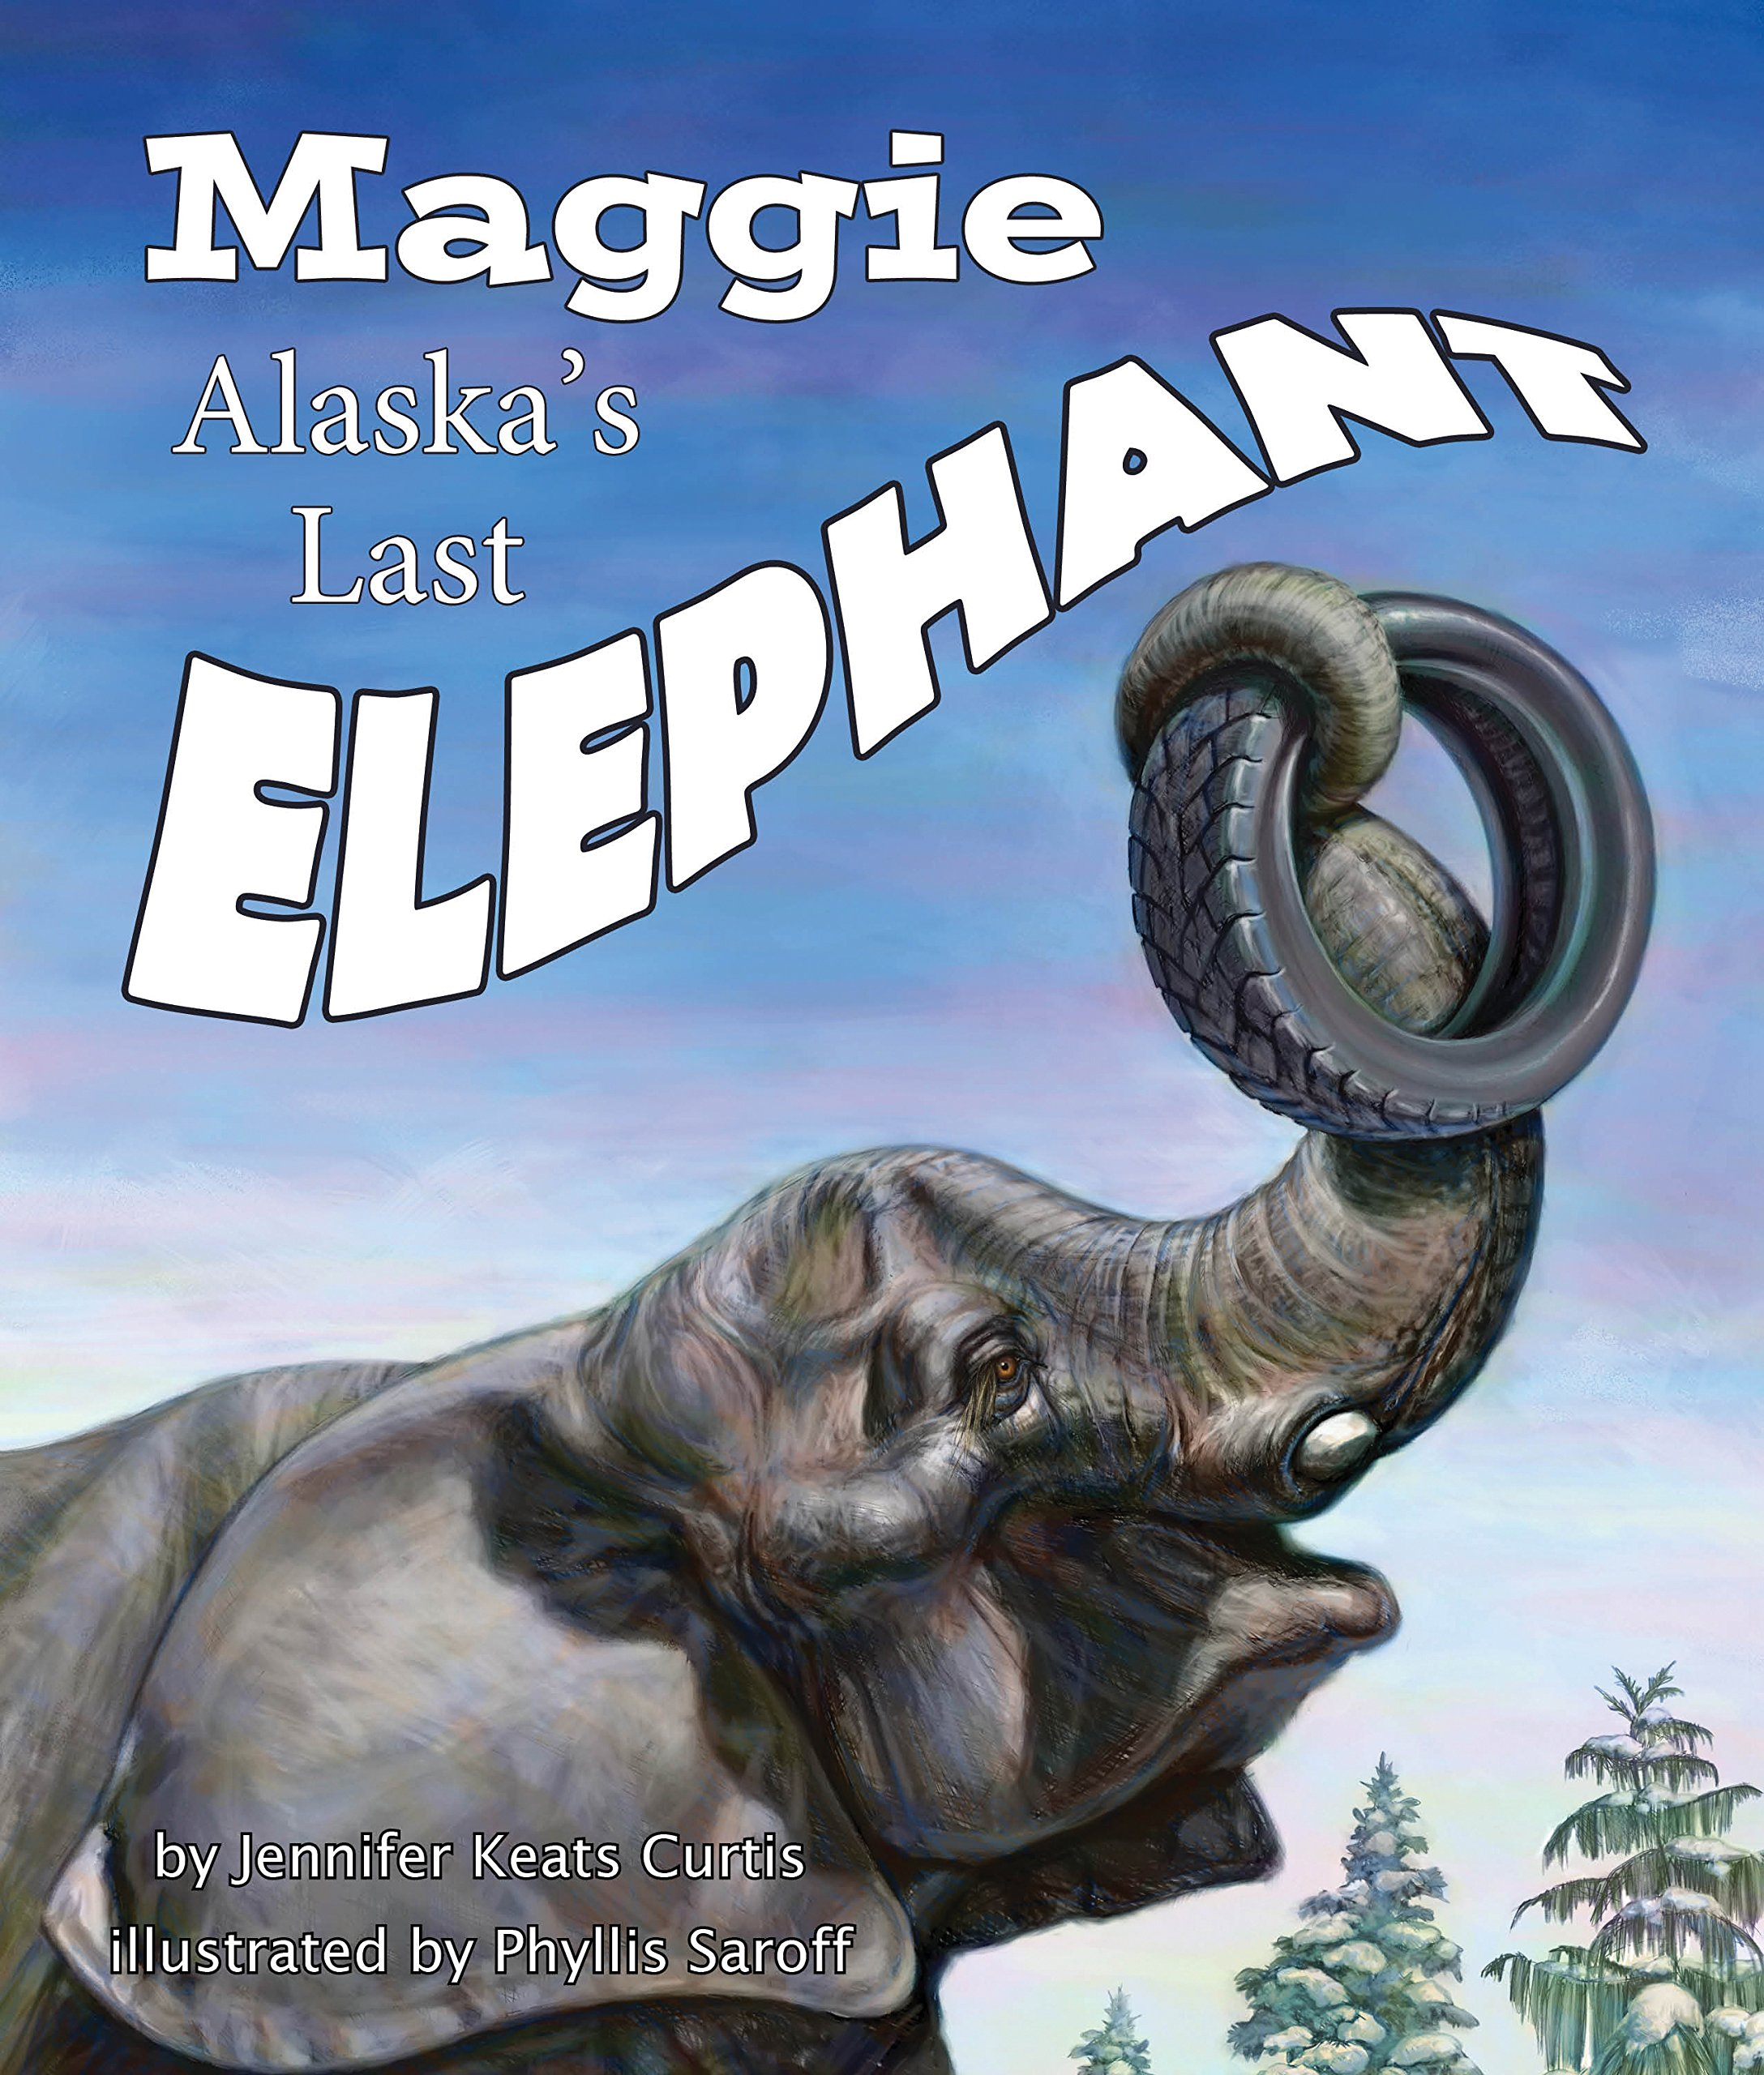 Image result for maggie alaska's last elephant amazon